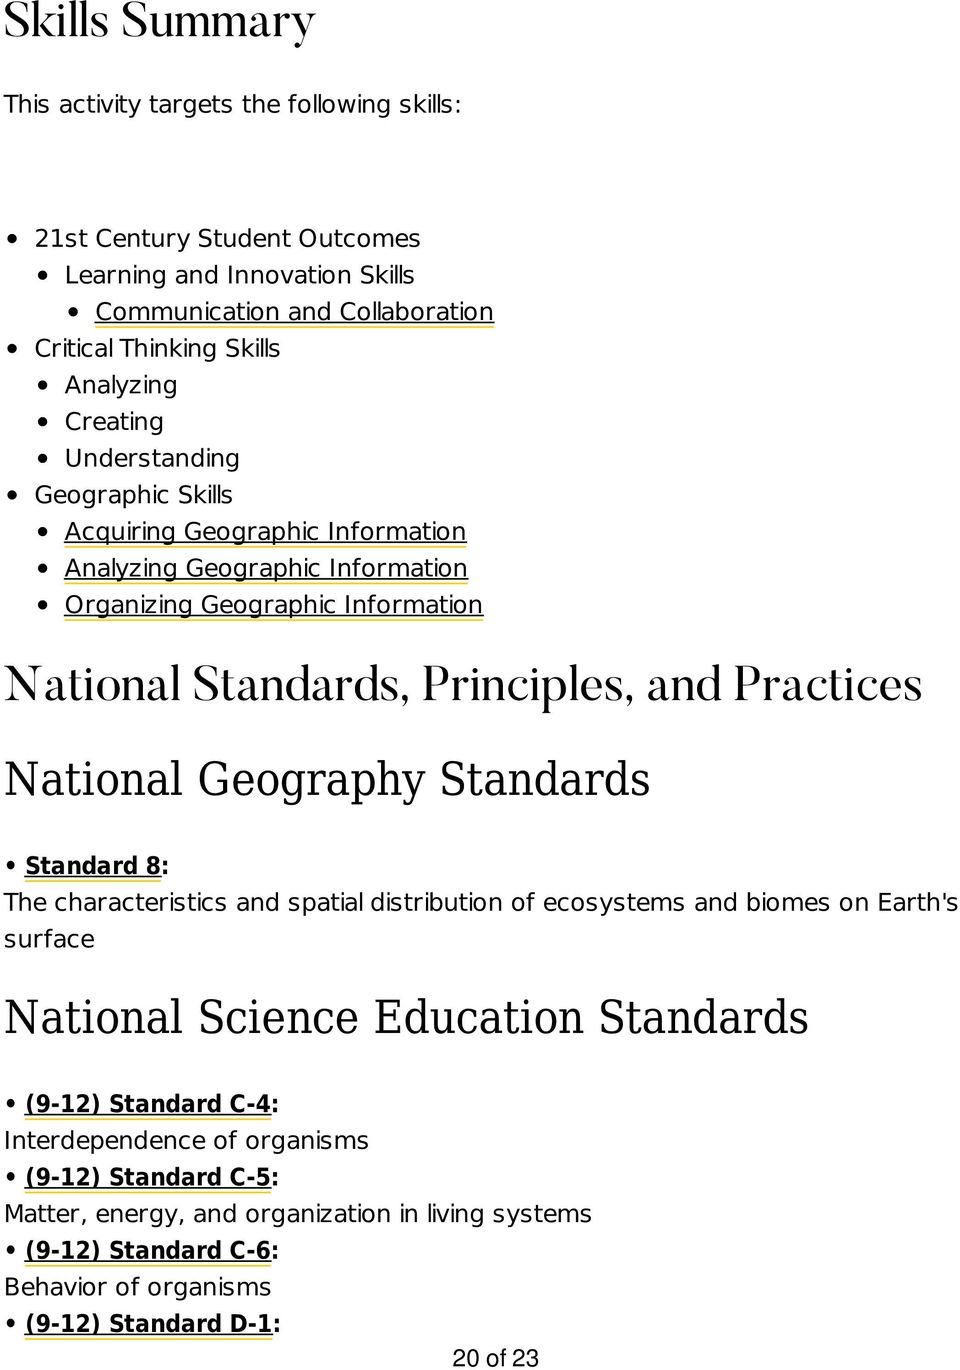 and Practices National Geography Standards Standard 8: The characteristics and spatial distribution of ecosystems and biomes on Earth's surface National Science Education Standards